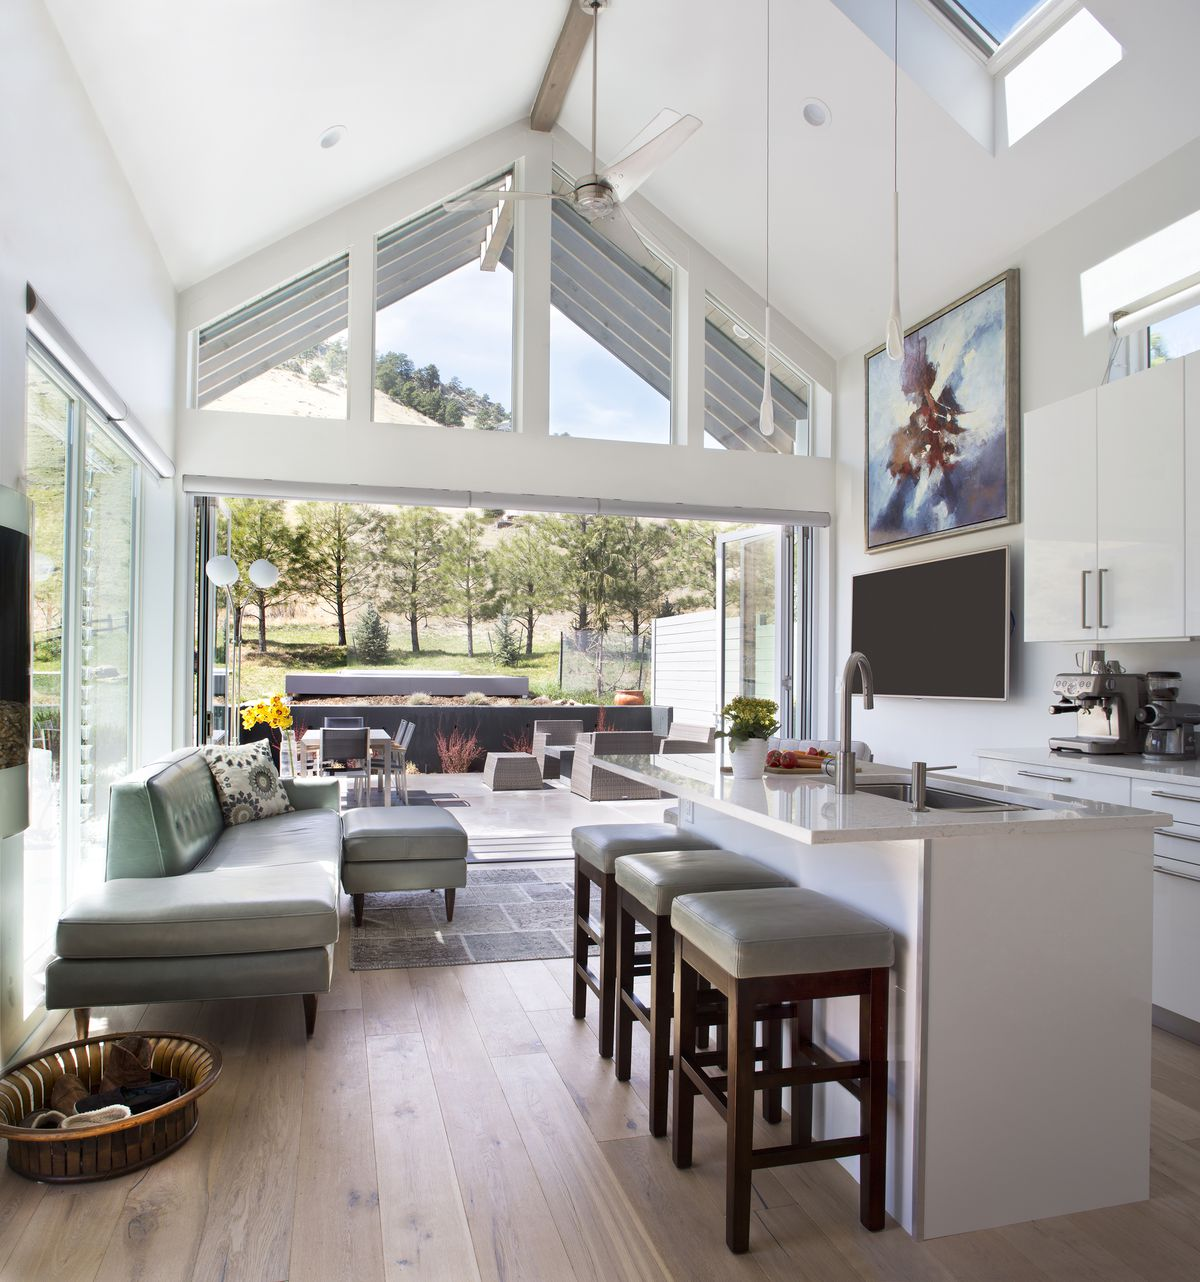 Looking out from the kitchen, you see very high ceilings, glass doors that open a wall of the house, and lots of windows.